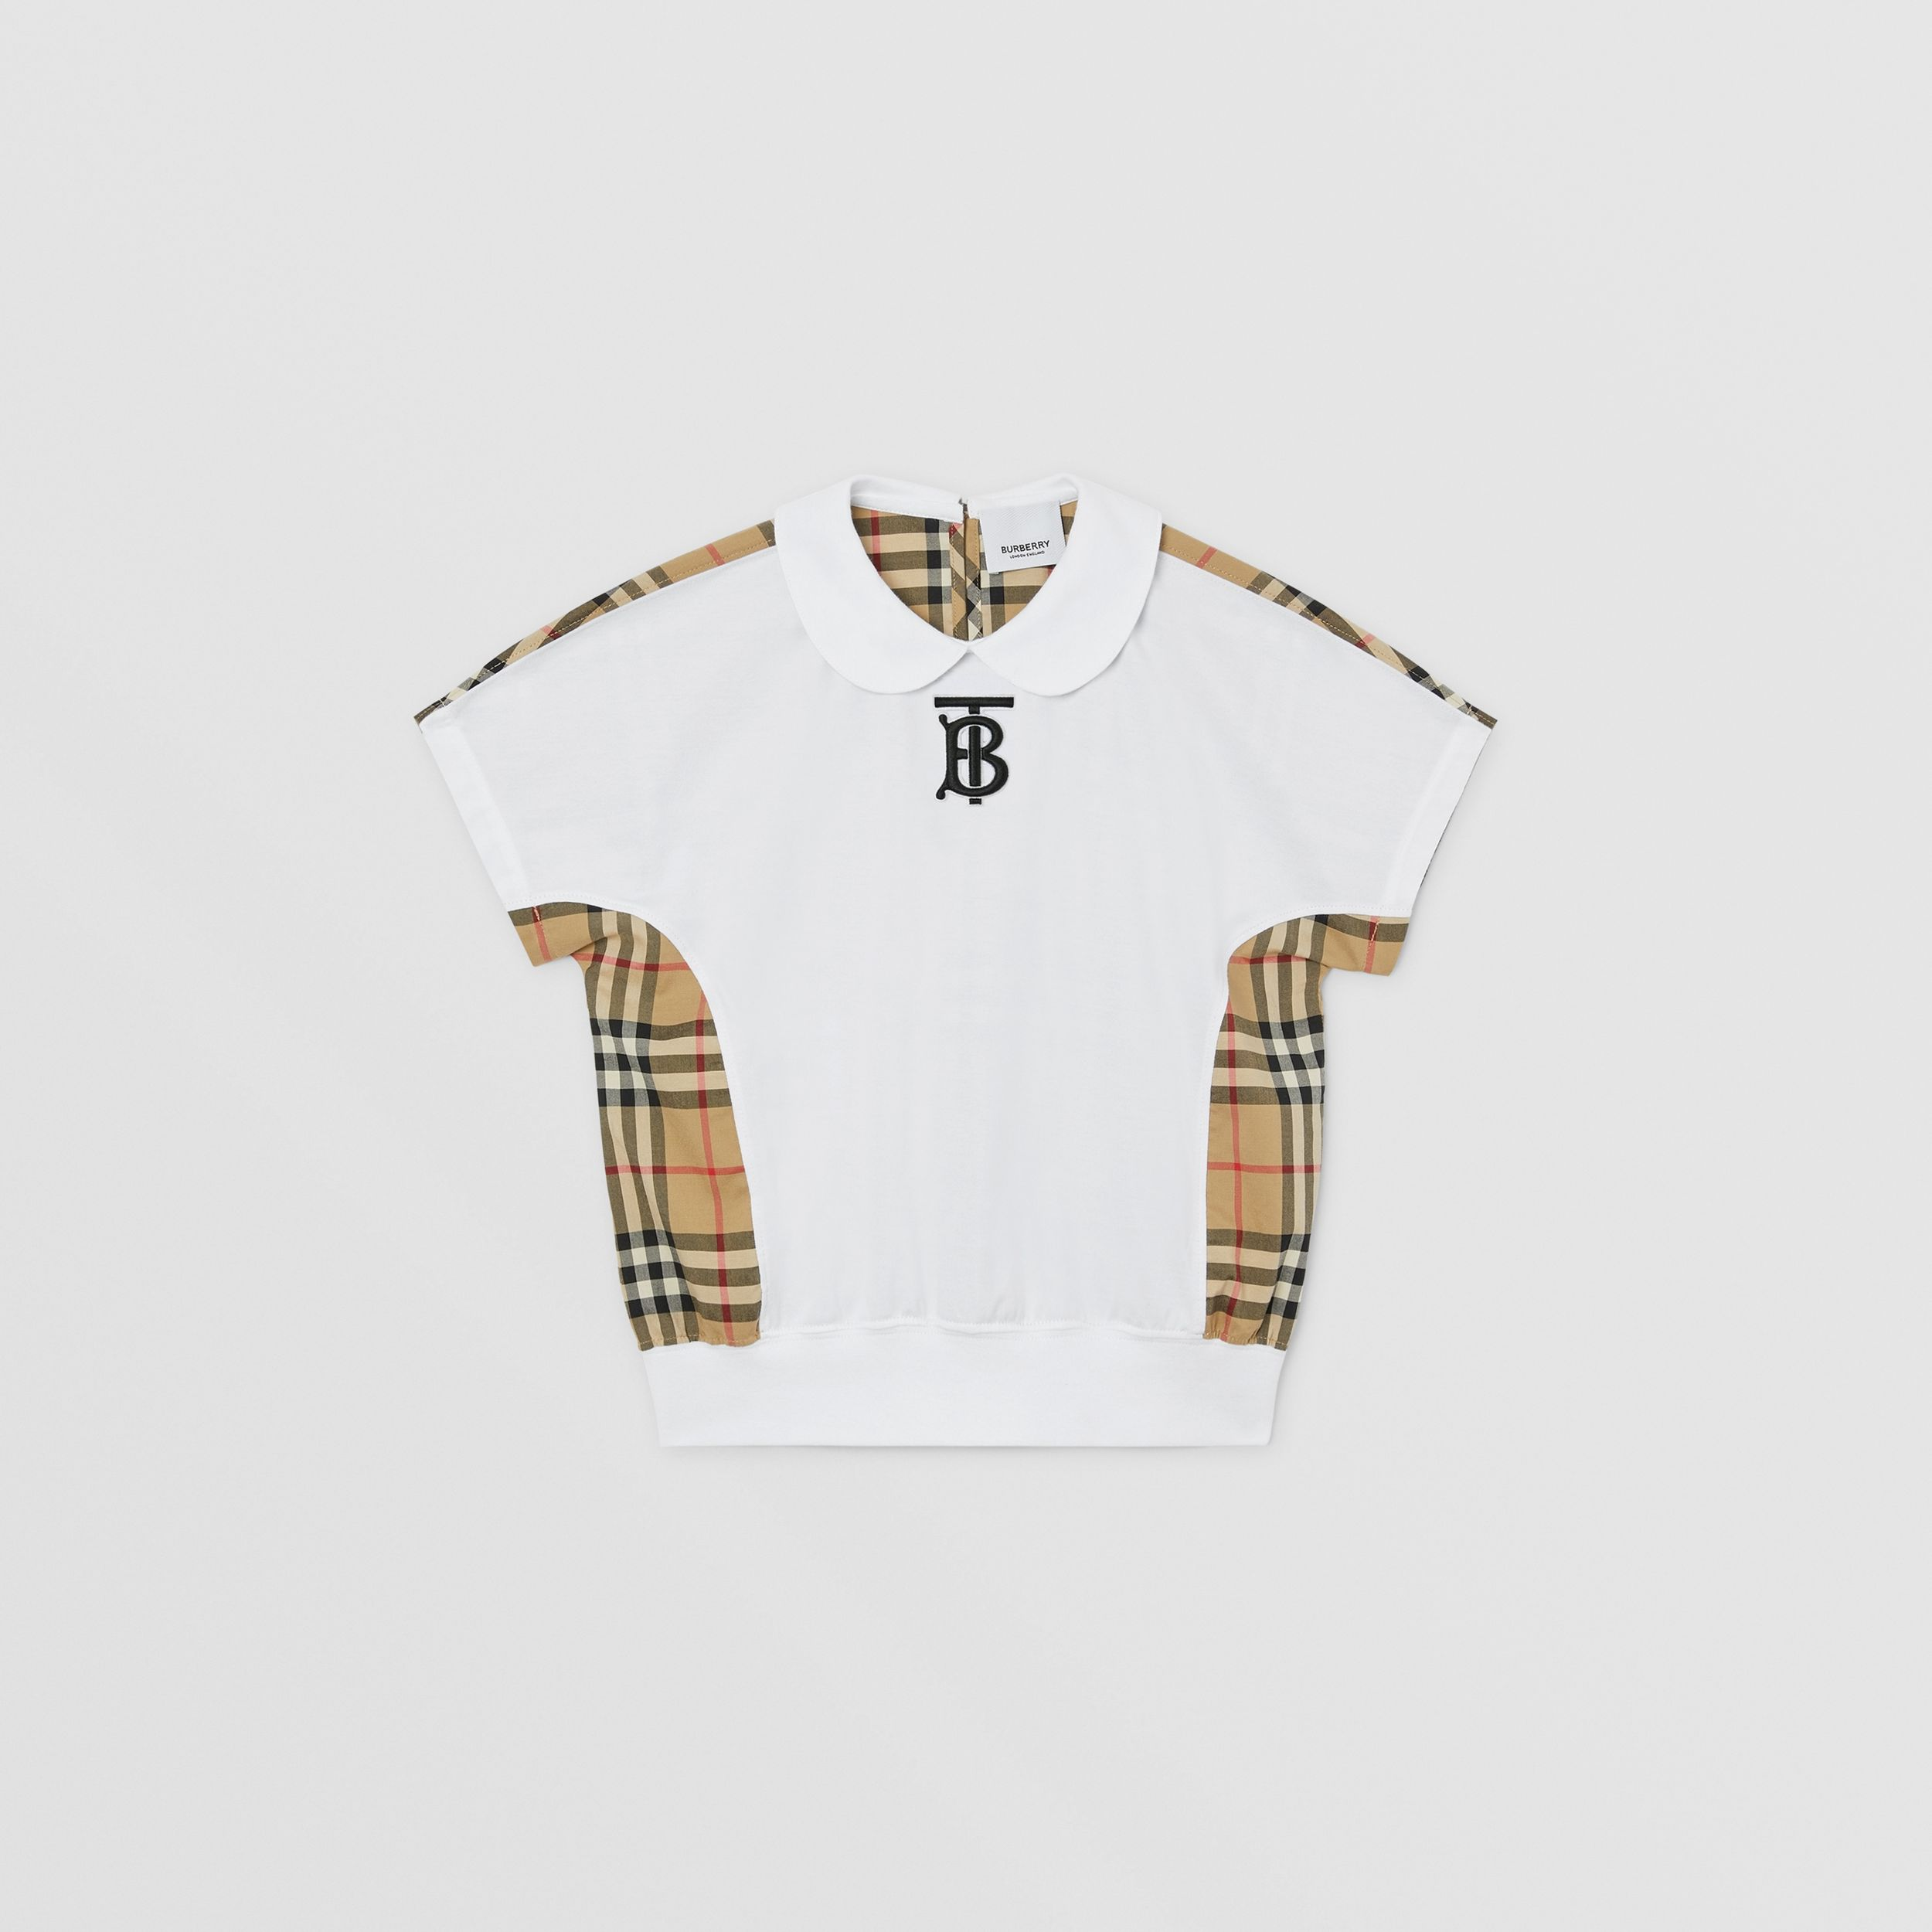 Monogram Motif Vintage Check Panel Cotton T-shirt in Archive Beige | Burberry - 1